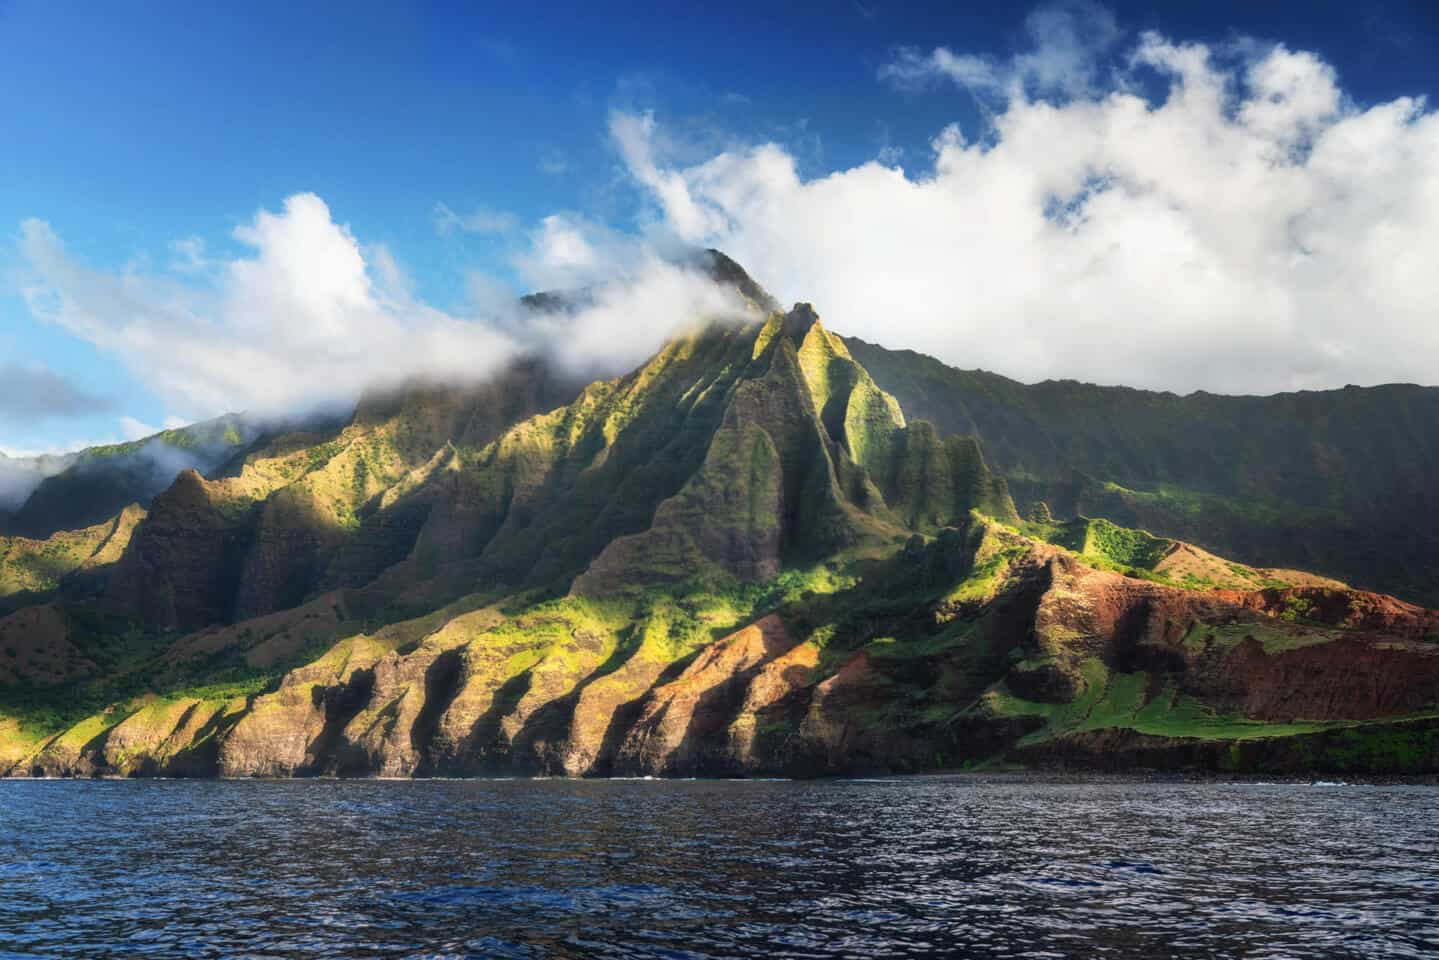 The Na Pali Coast tour will be the highlight of your entire 7 day itinerary for Kauai.